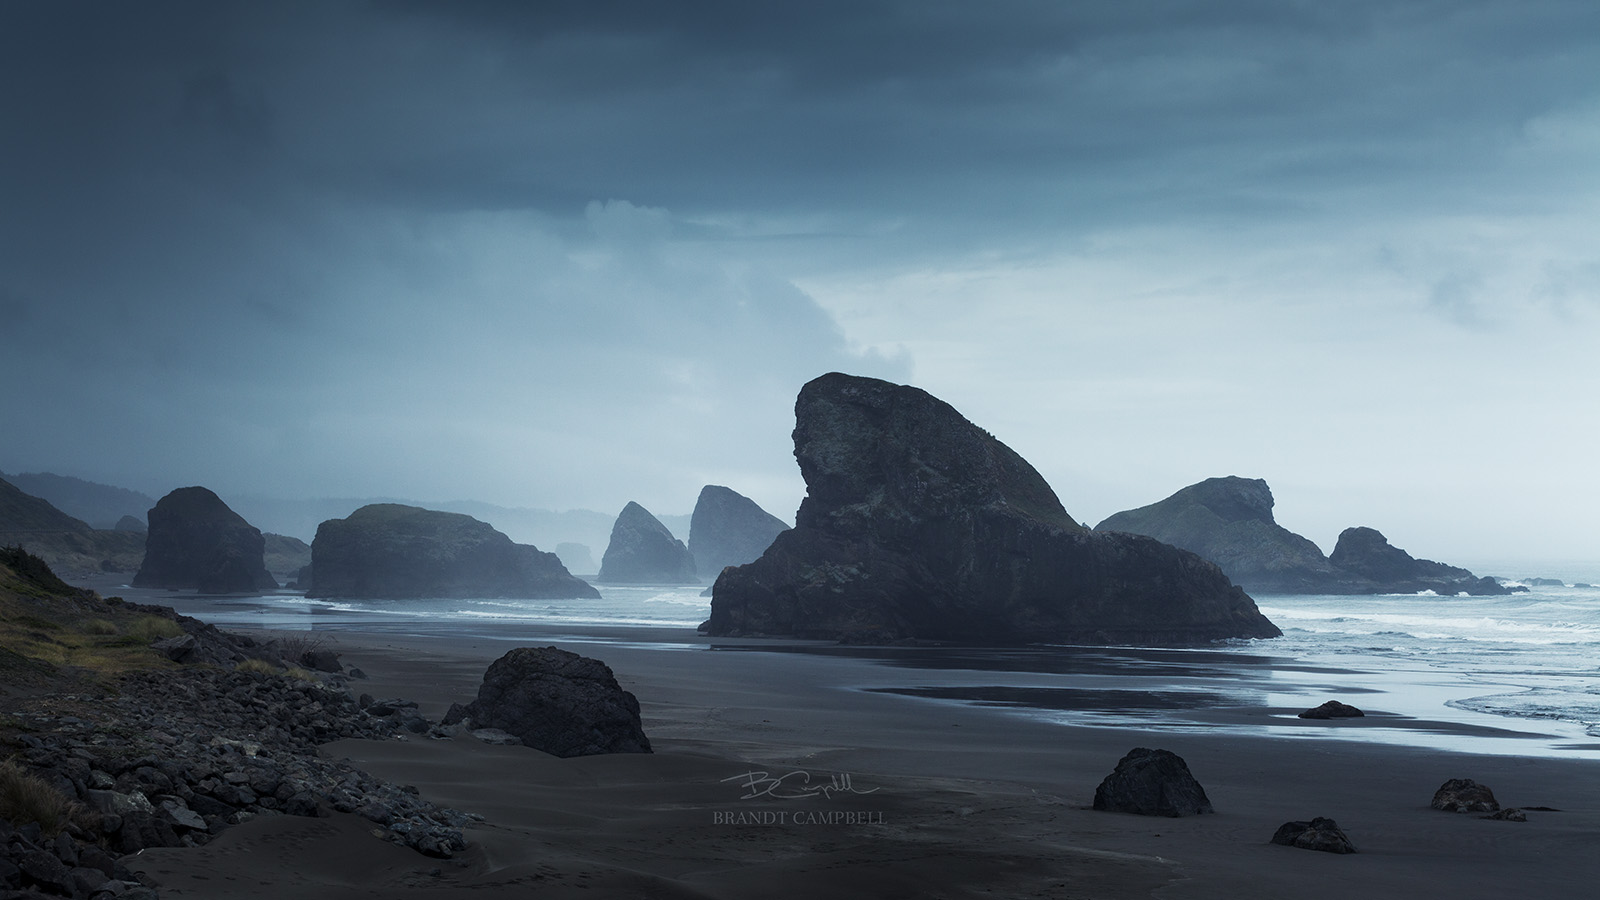 Cerulean Dreamscape by brandtcampbell